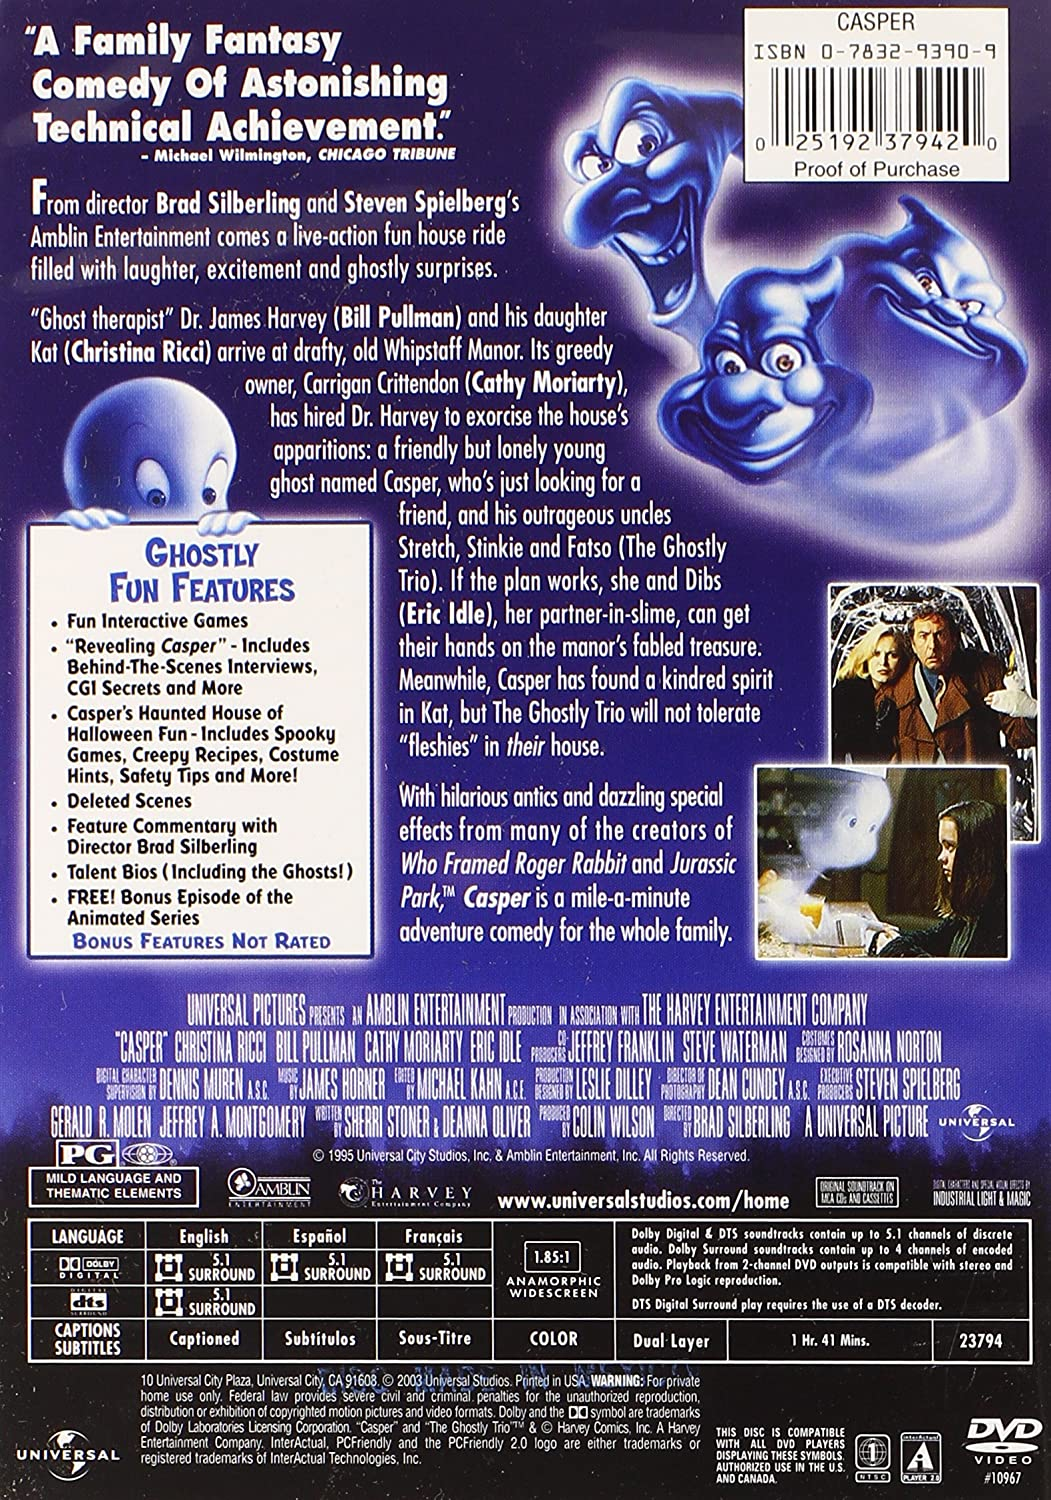 Casper 1995 Vhs | www.pixshark.com - Images Galleries With ...